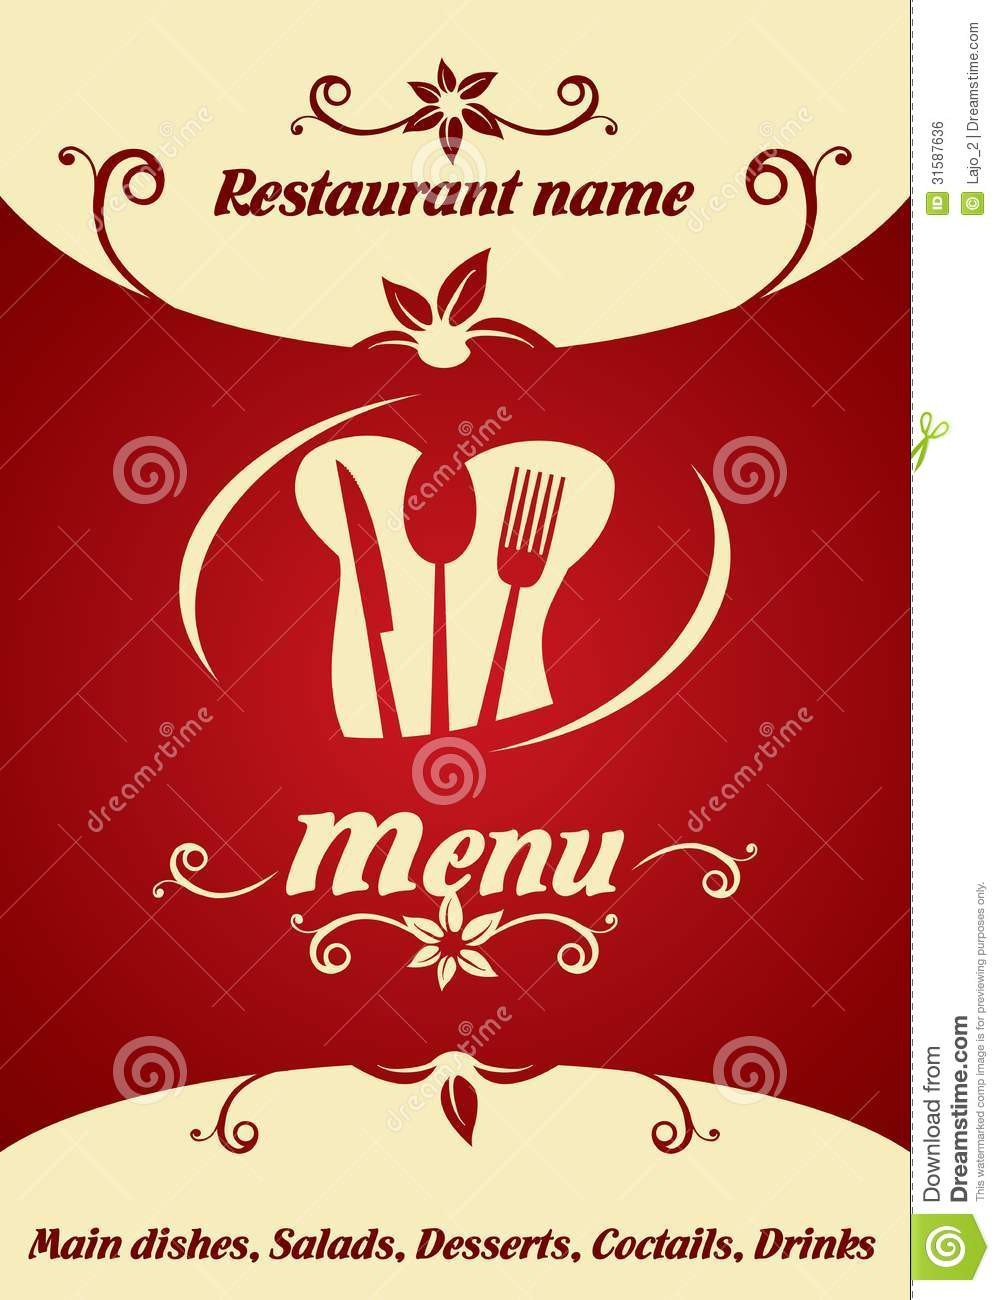 Restaurant menu design stock vector illustration of